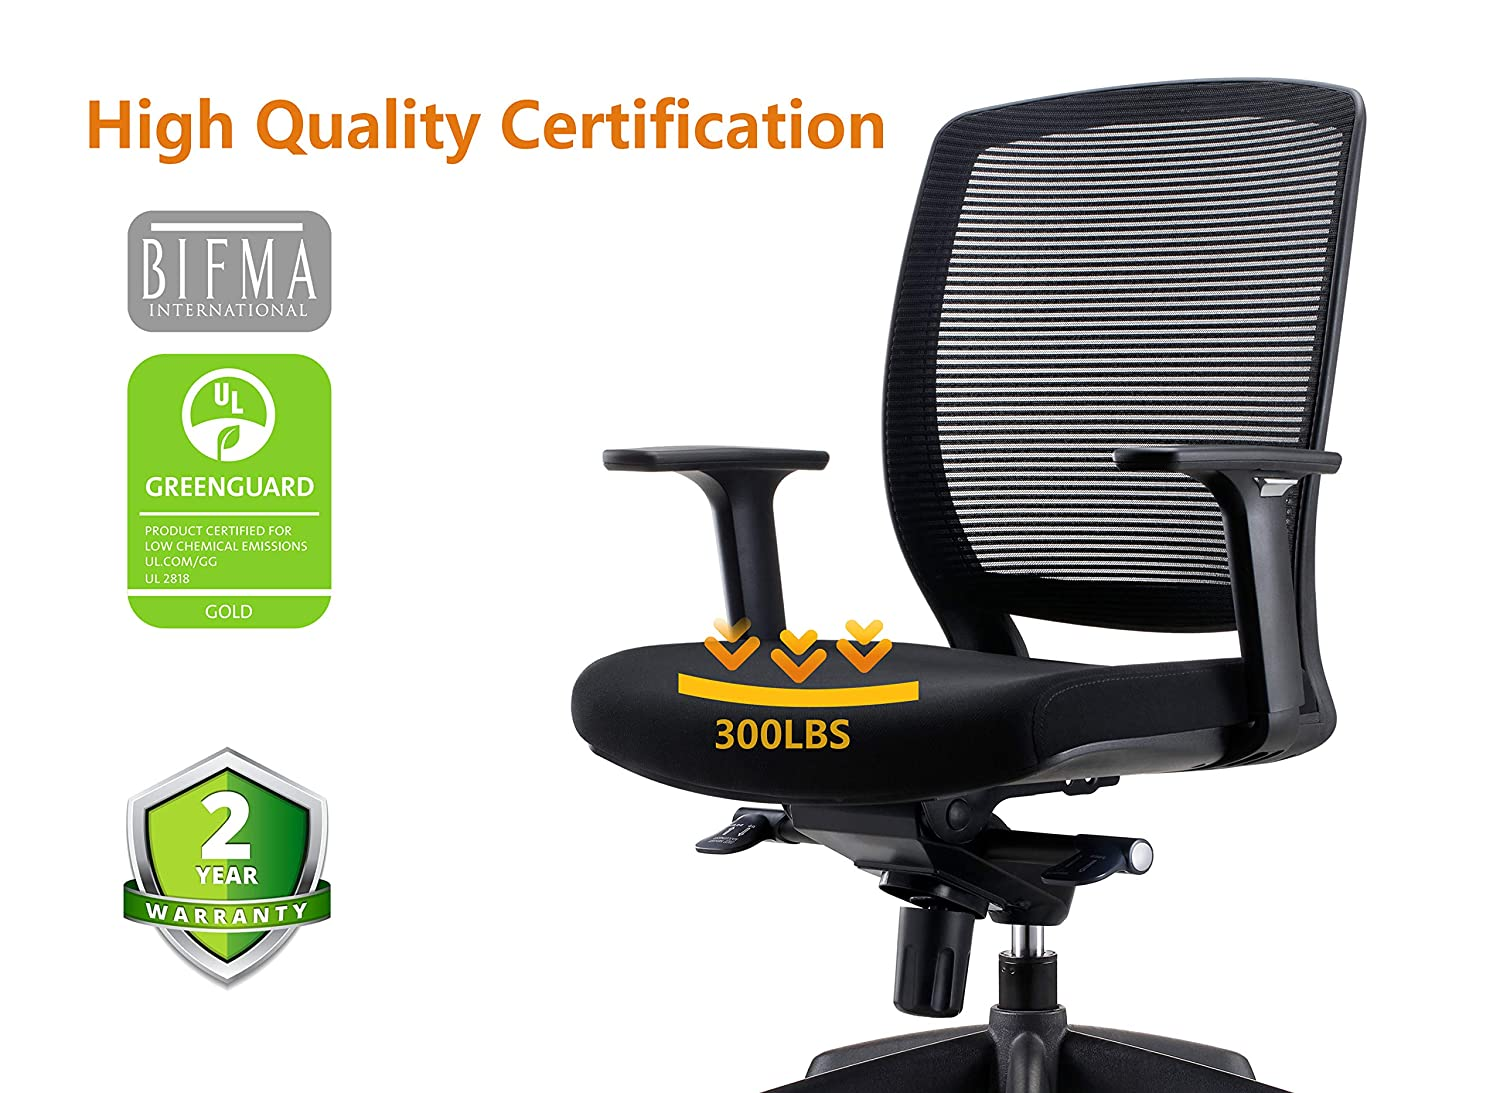 Chairlin Ergonomic Office Chair with Arms Comfortable Task Chair Adjustable Desk Chair Black